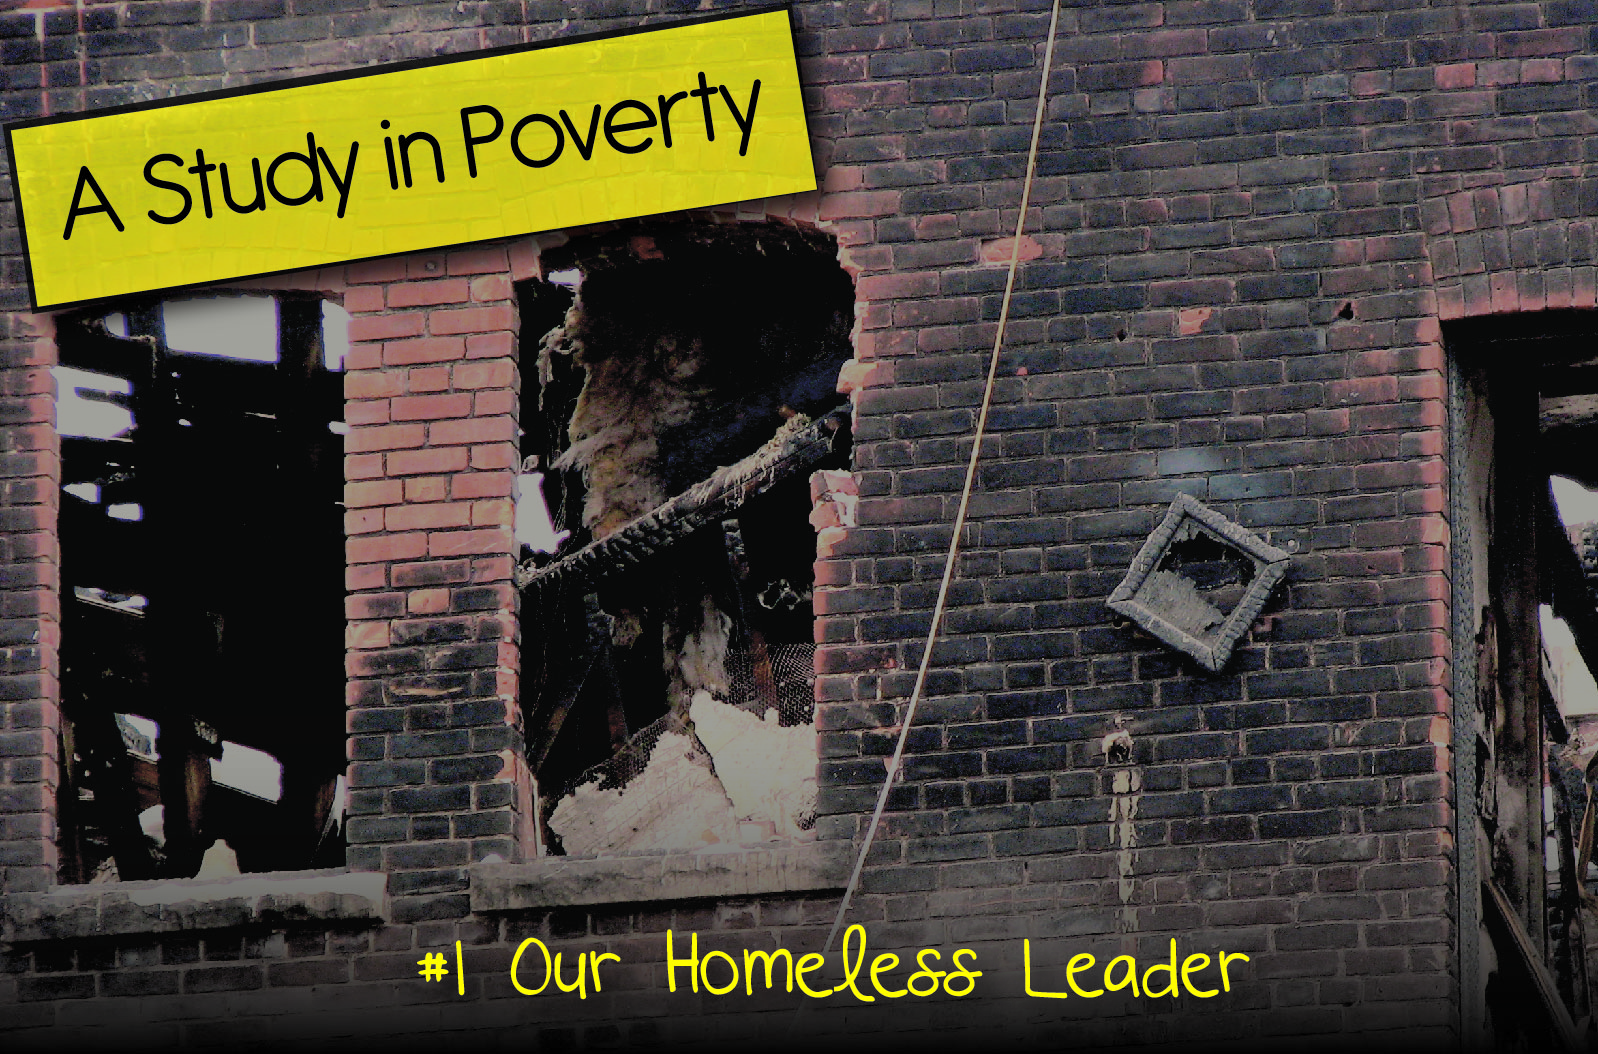 a study of poverty Therefore, the official poverty rate of 151 percent understates the number of people who experience poverty income inequality is greatest cause of higher poverty rates income inequality is the largest factor contributing to higher poverty rates.